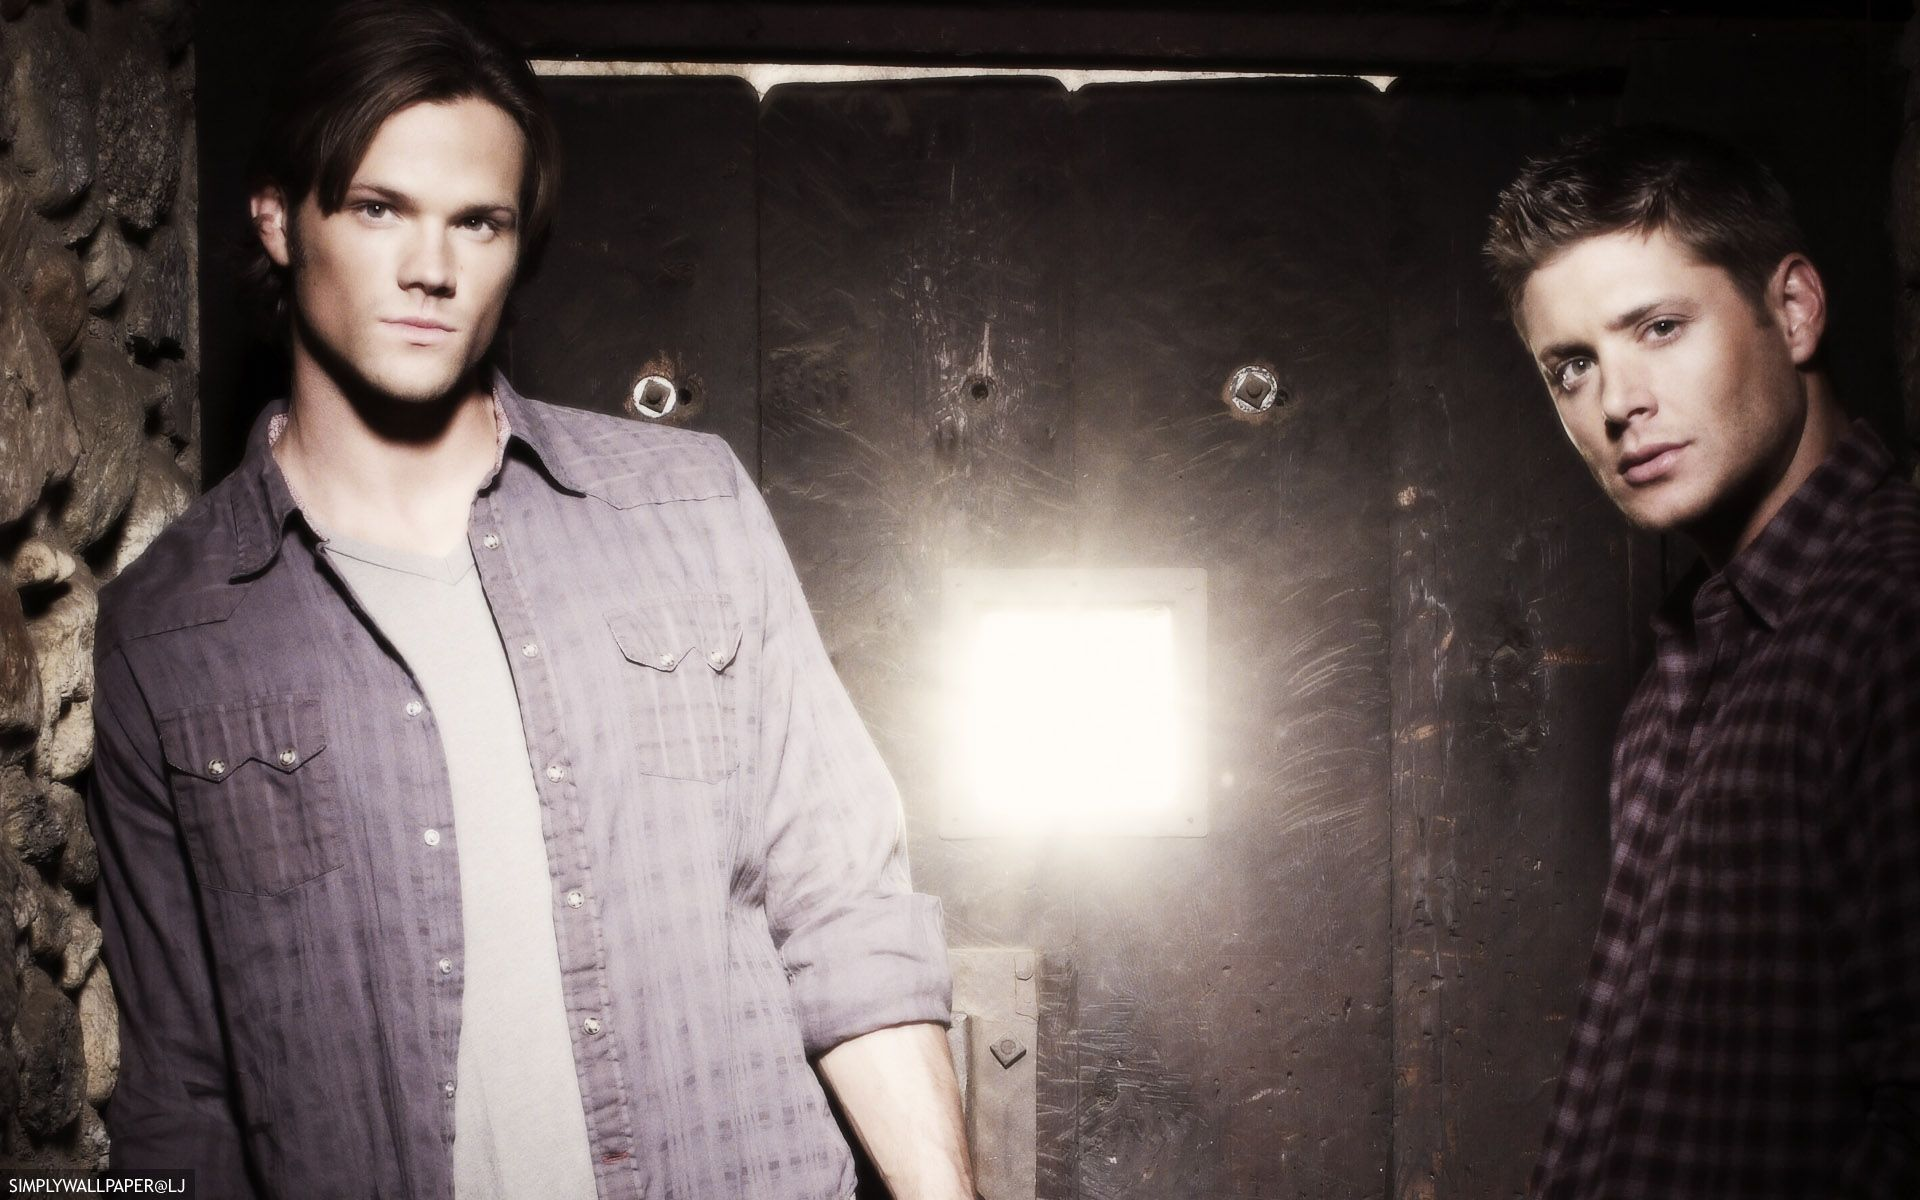 Supernatural Desktop Background Wallpaper Sam And Dean Winchester Credit Simplywallpaper Historyjunkie Supernatural Seasons Tv Supernatural Supernatural